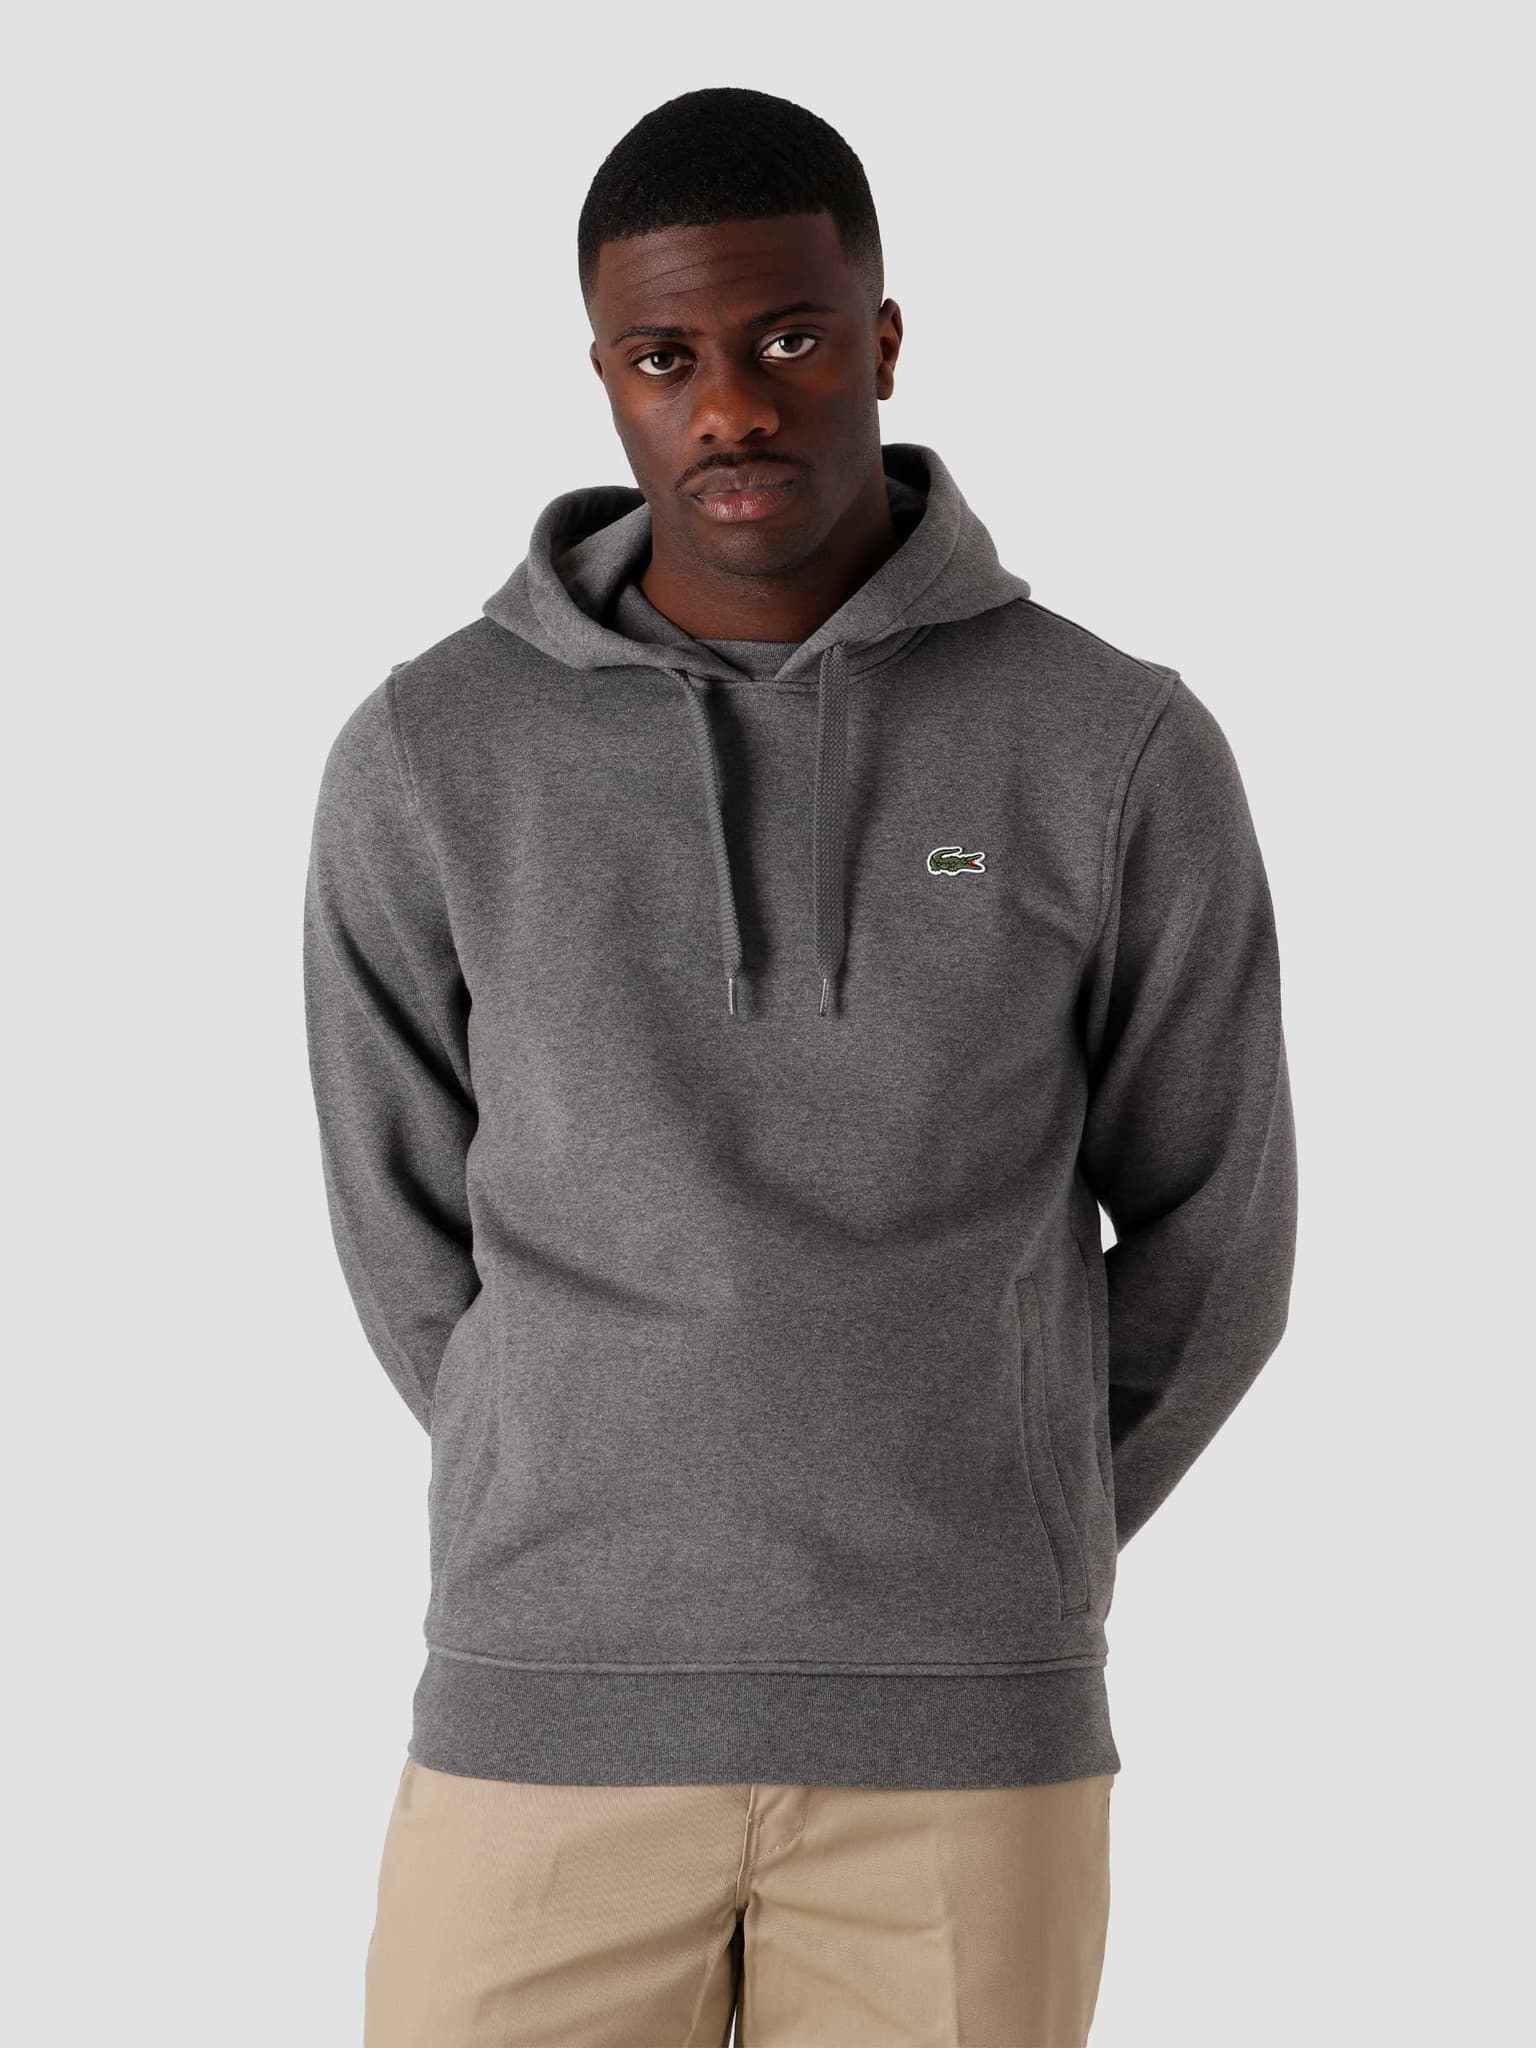 1HS1 Men's Sweater Pitch Chine Graphite Somb SH1527-11